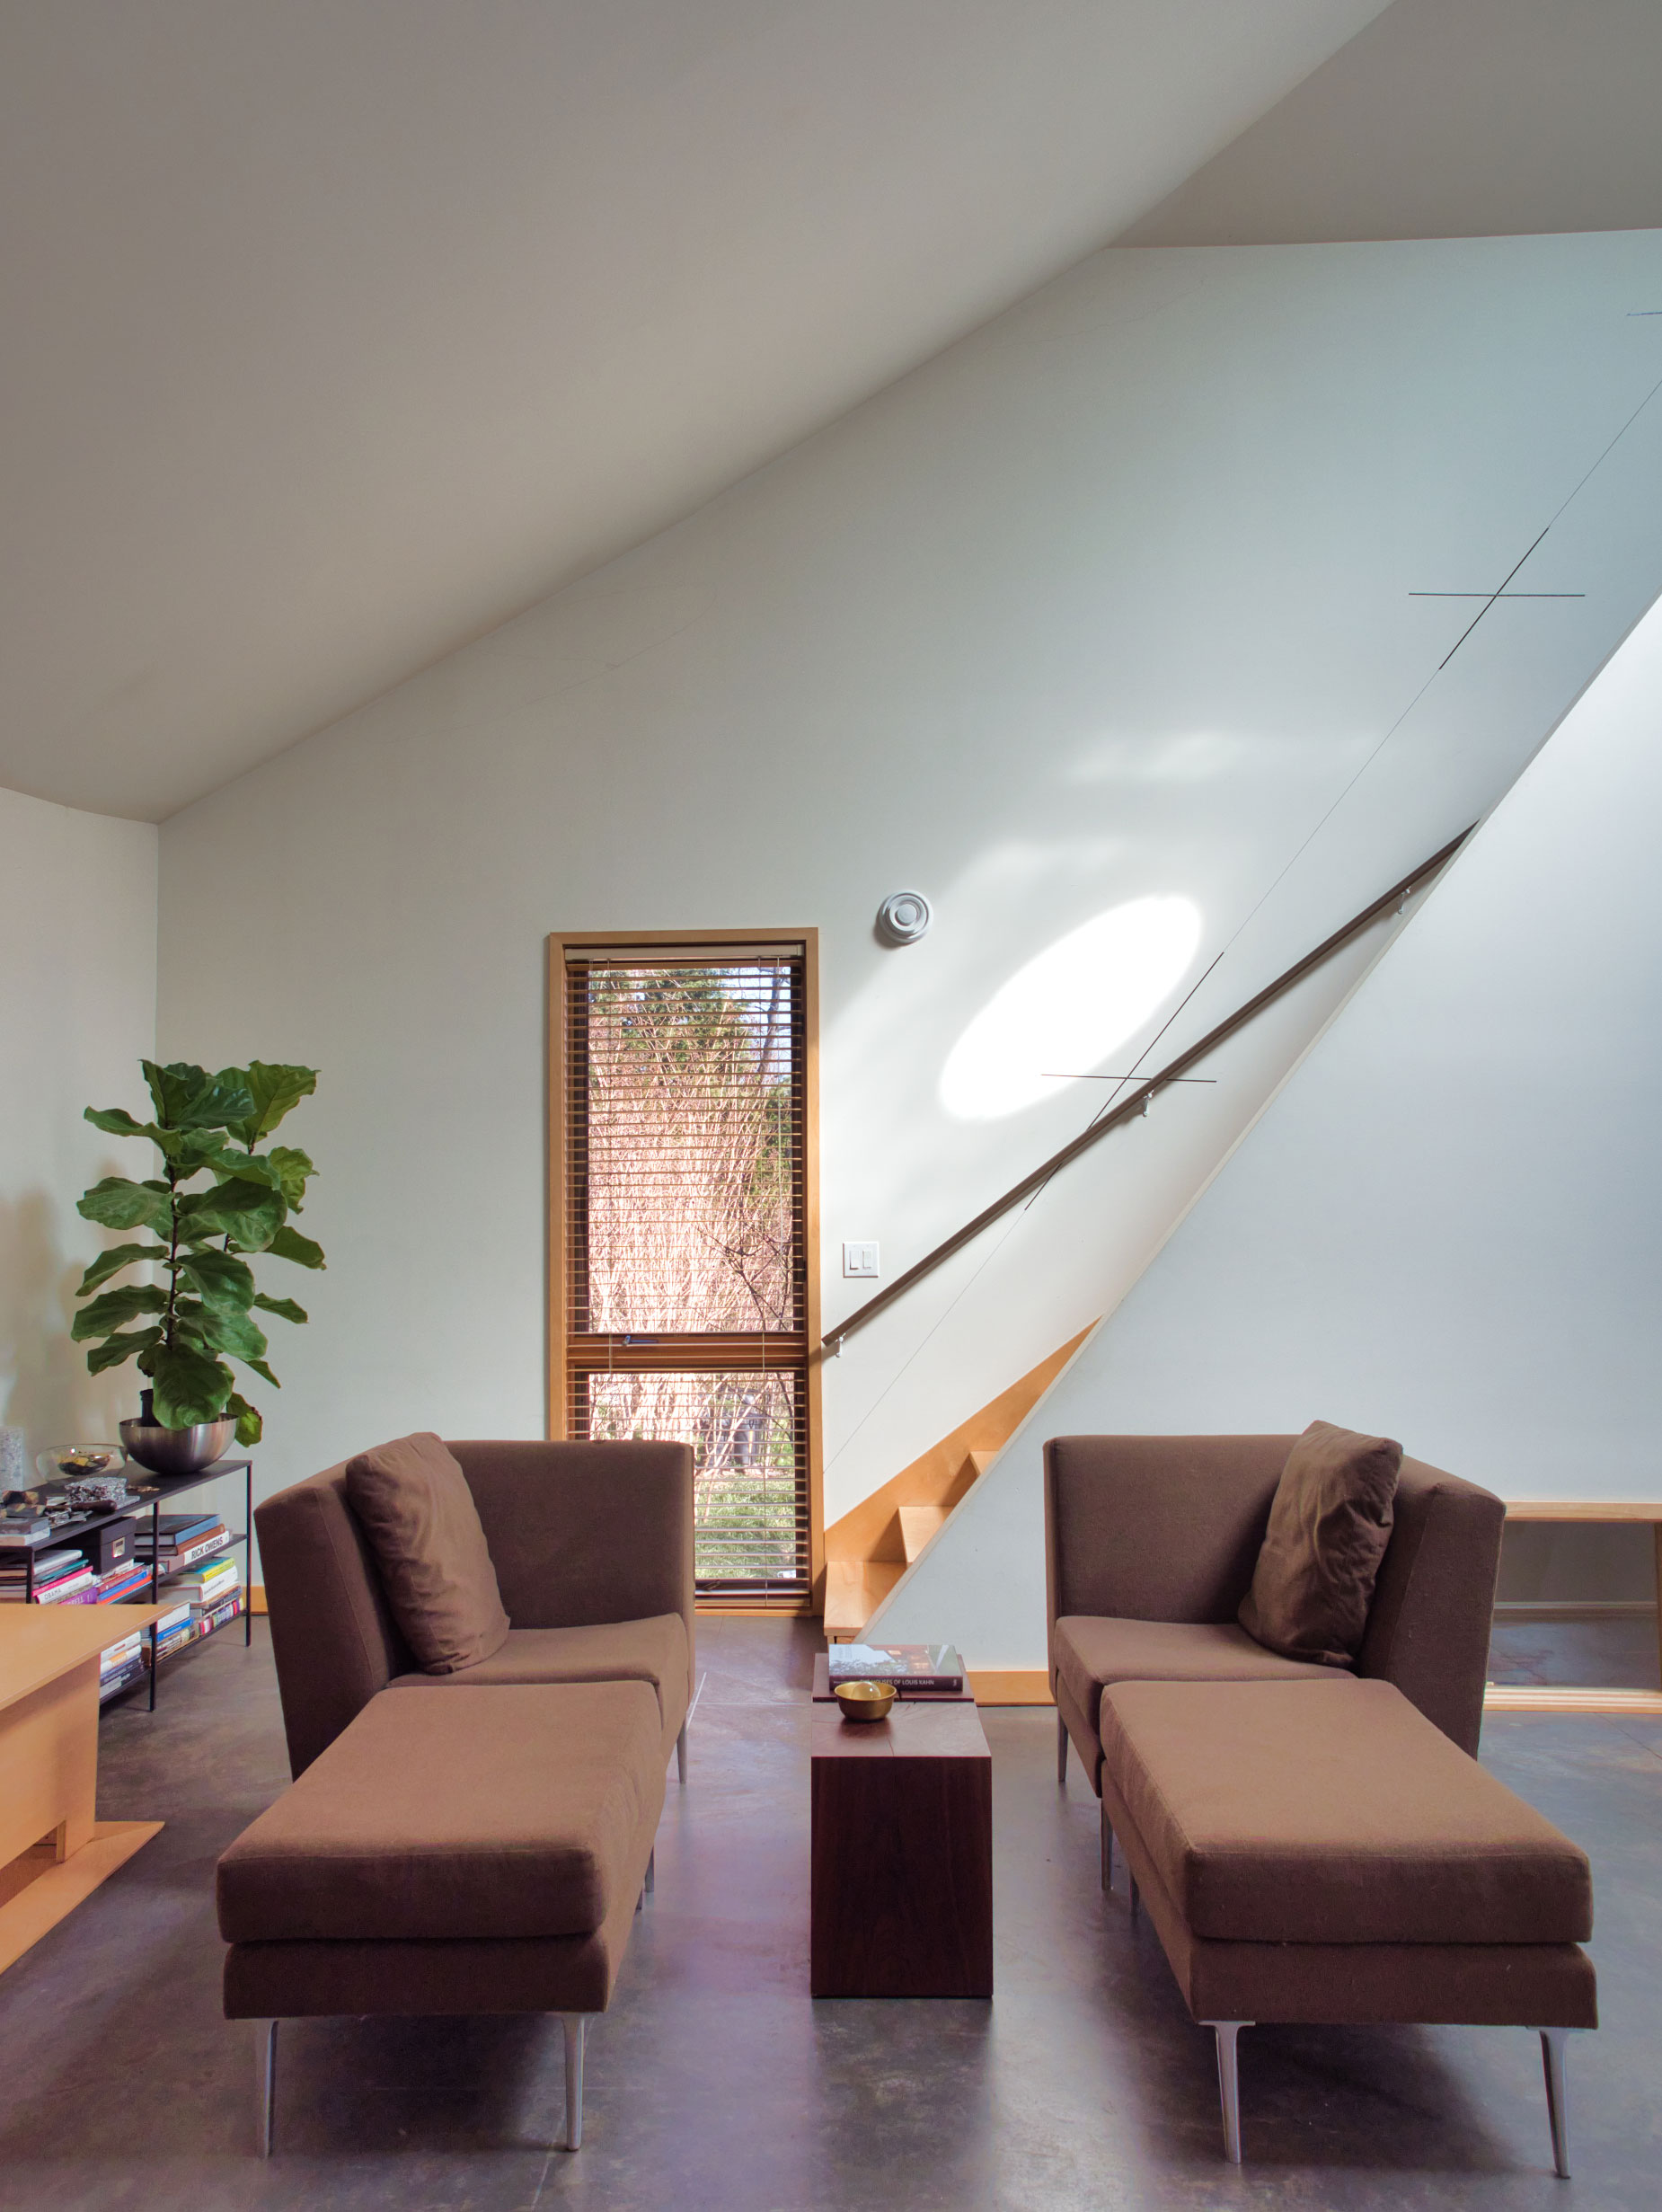 Timepiece, House, Charlottesville, Virginia, Observatory, Living Room, Blinds, Light, Stair, Natural Materials, Economical